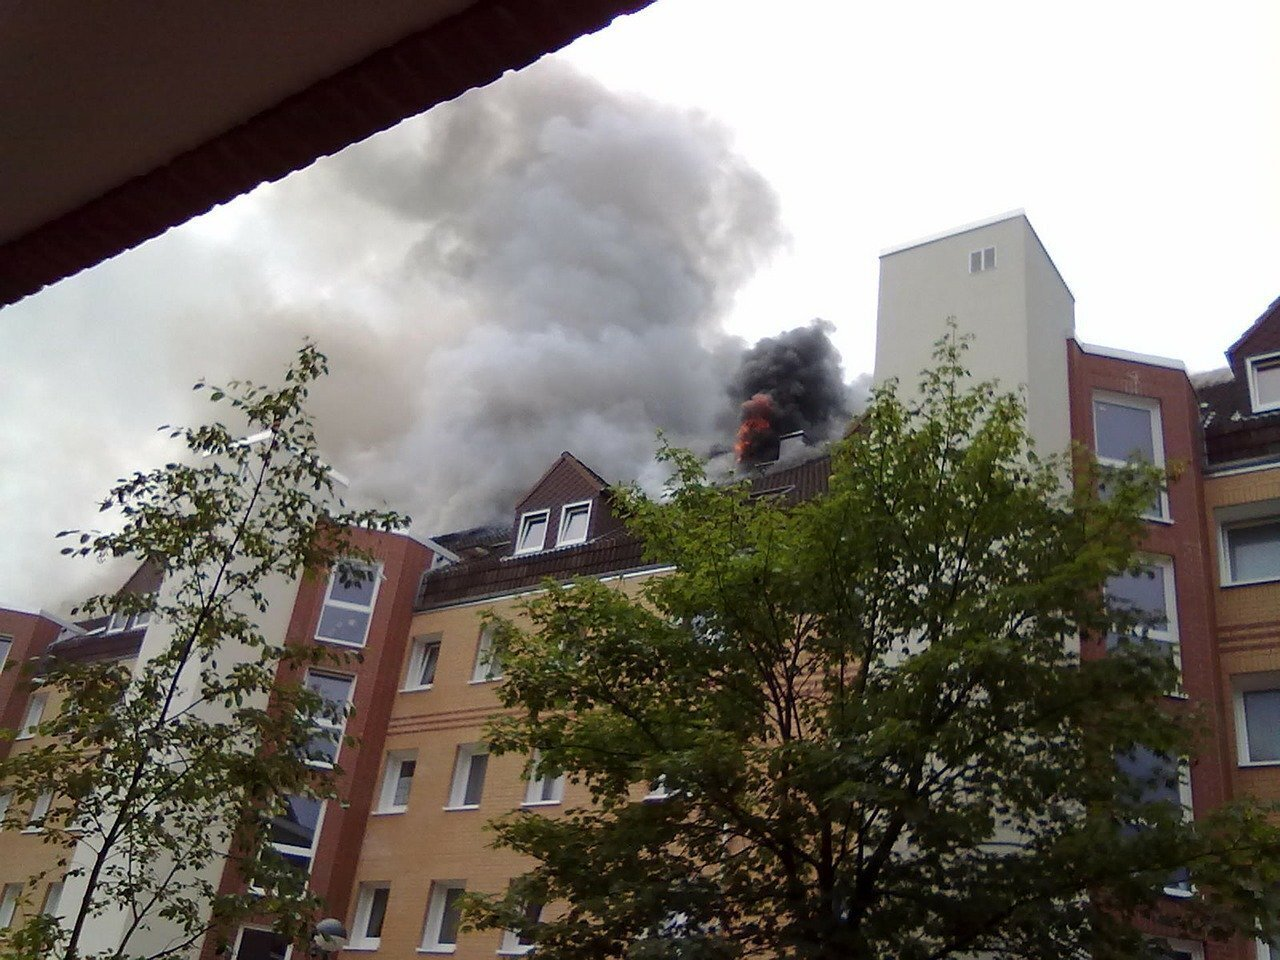 Top 3 Mistakes Tenants Make That Can Damage Your Apartment Complex Thumbnail Image